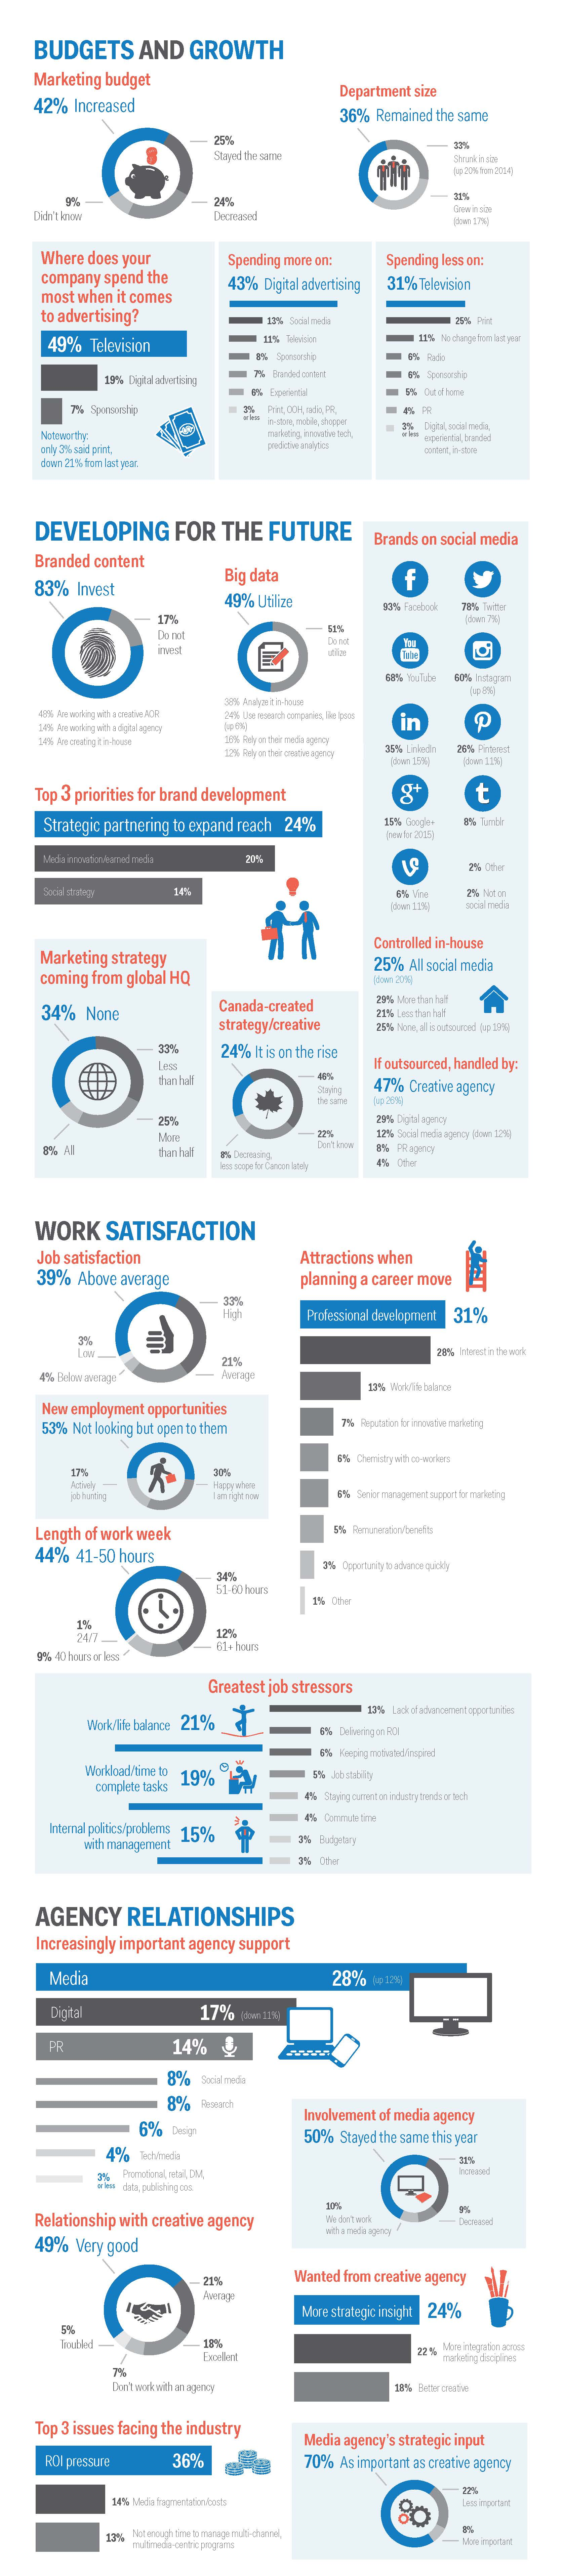 survey_combined_forweb